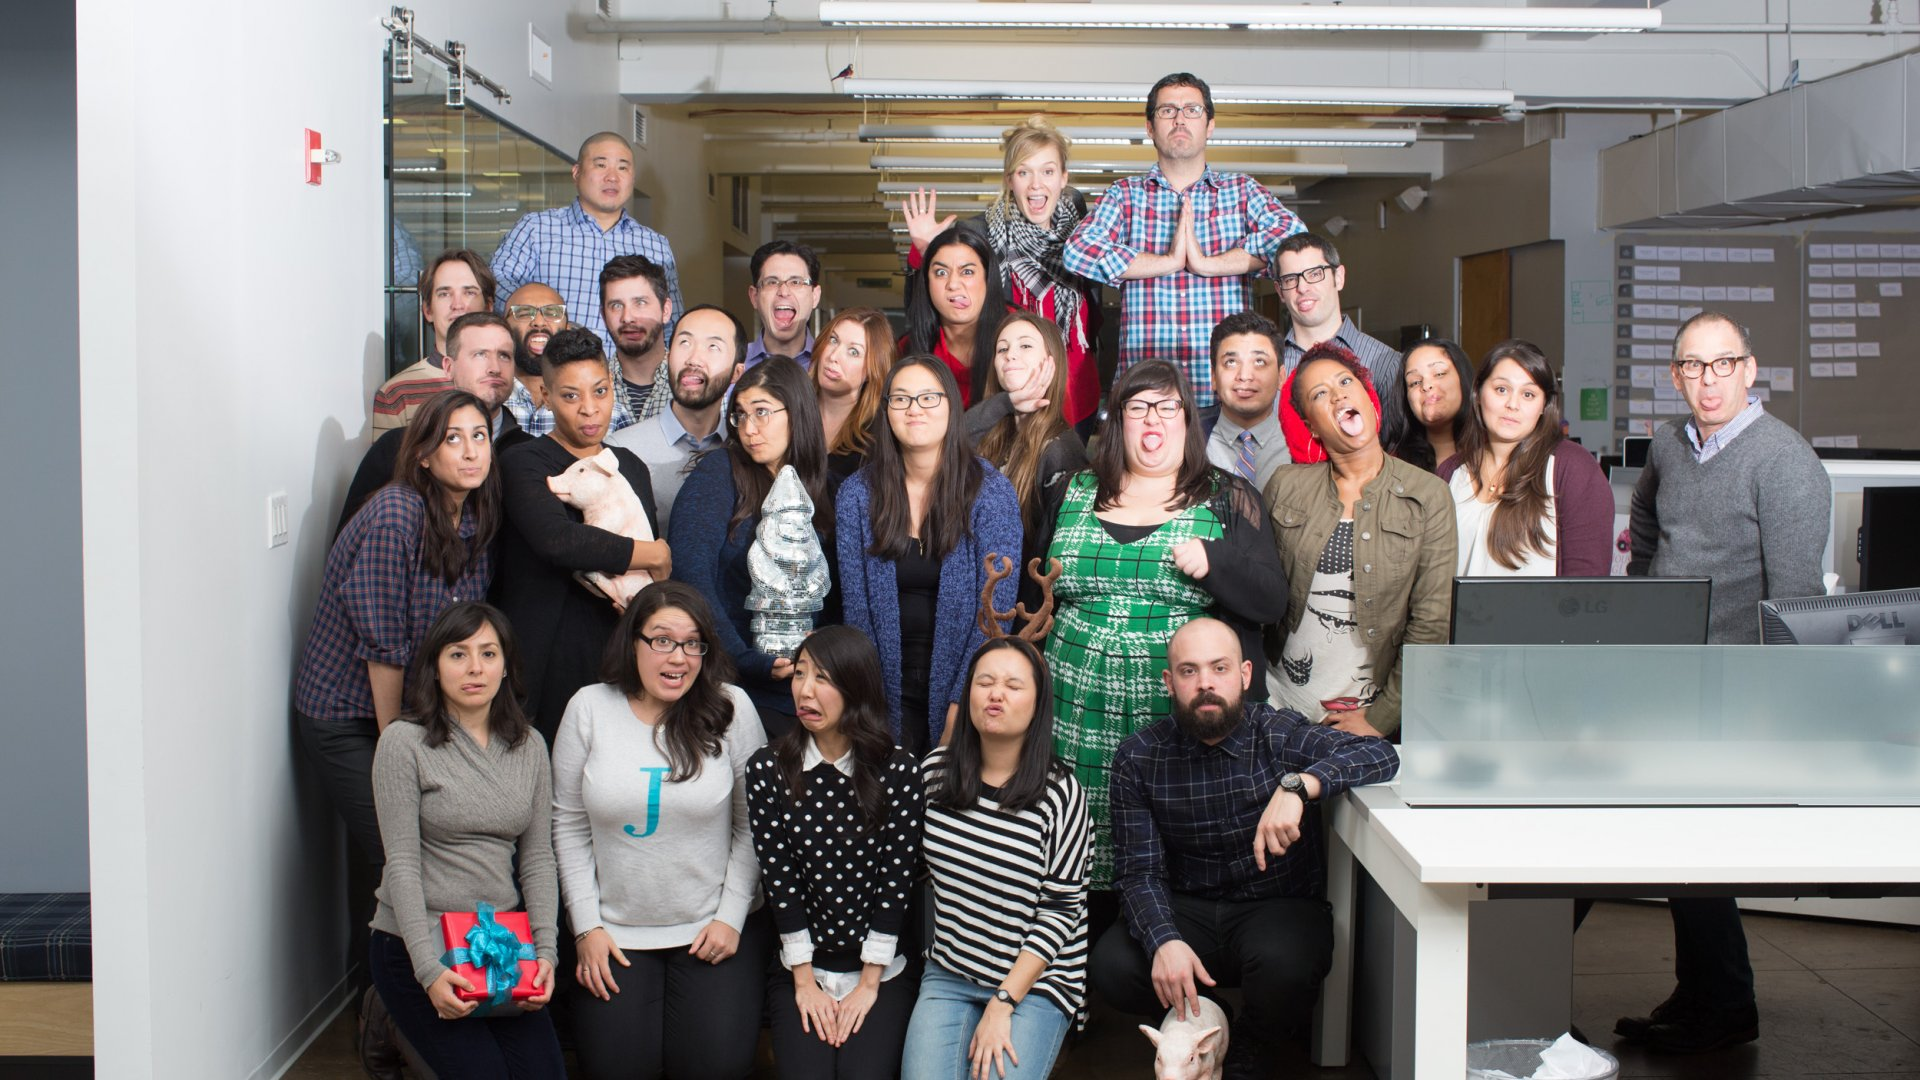 None of these employees at Alexander Interactive, a $10-million advertising agency based in Manhattan, will be working the week of July 4th.